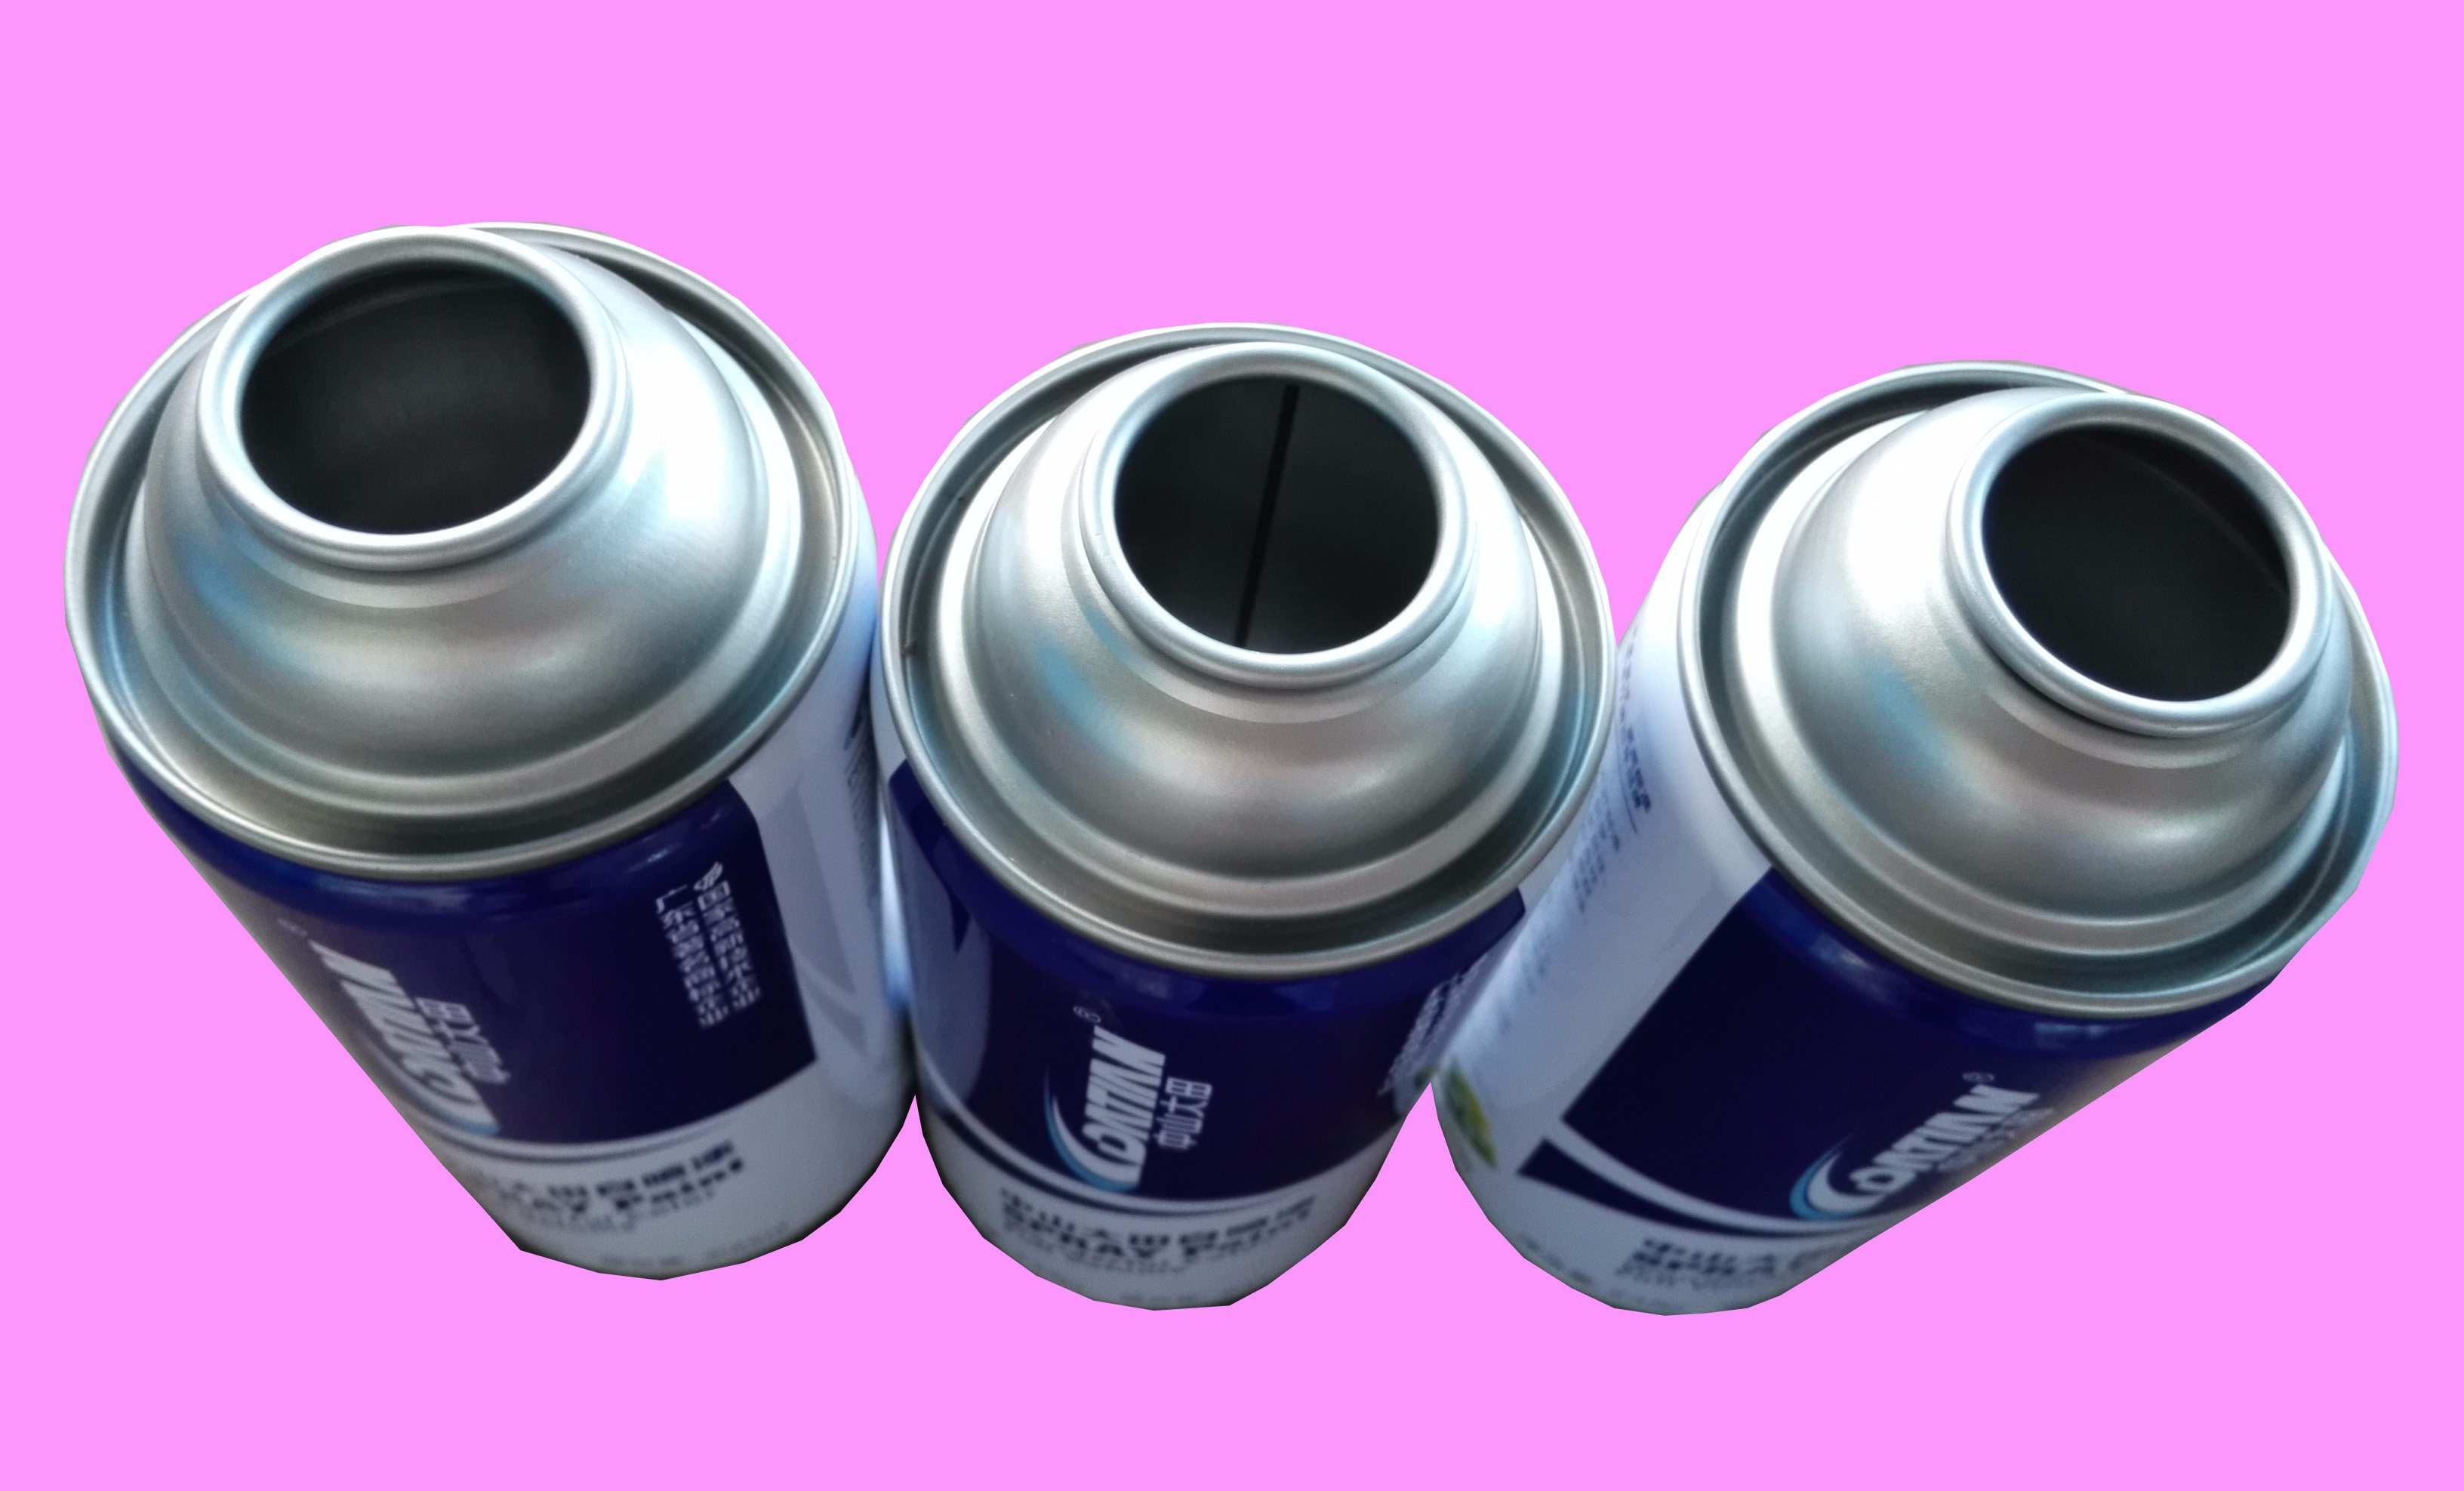 Empty Aerosol Cans for Spray Paint